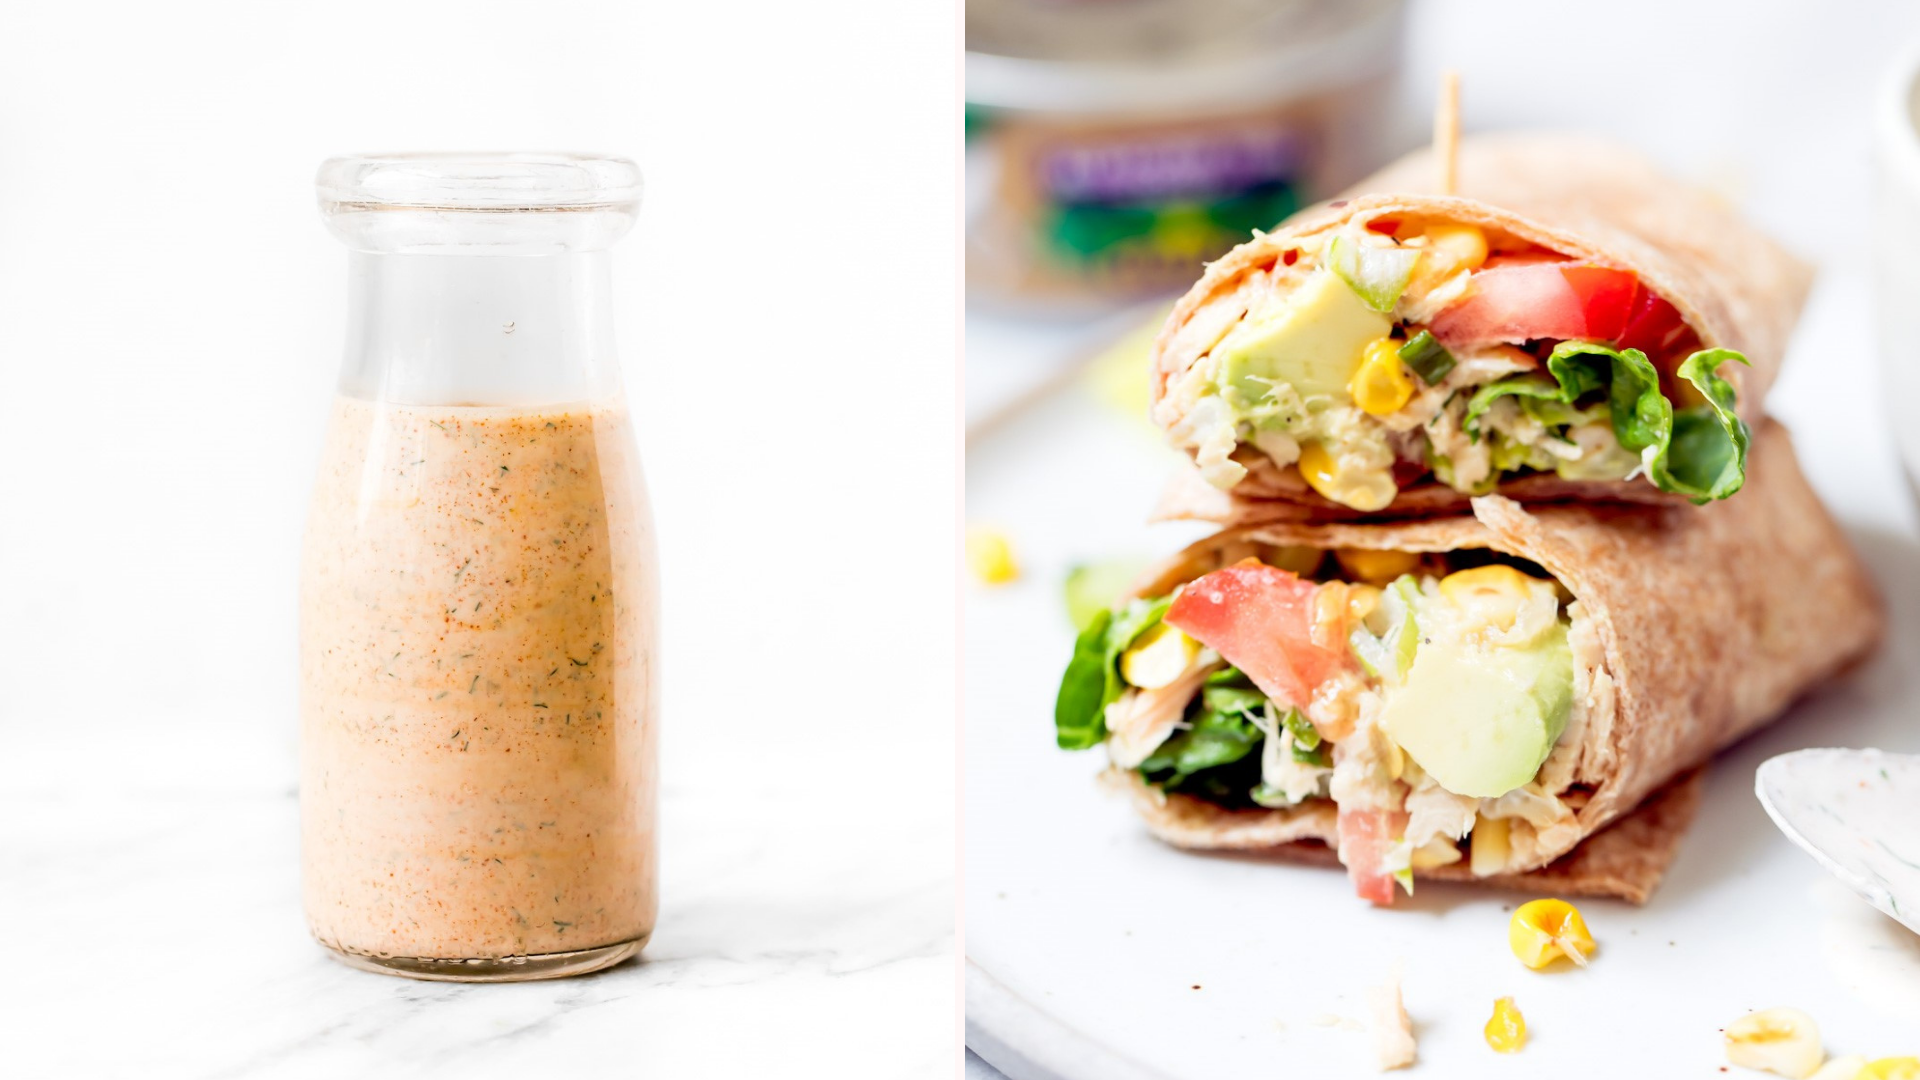 A glass pourer full of chipotle ranch dressing, and two stacked wraps with chipotle ranch inside.